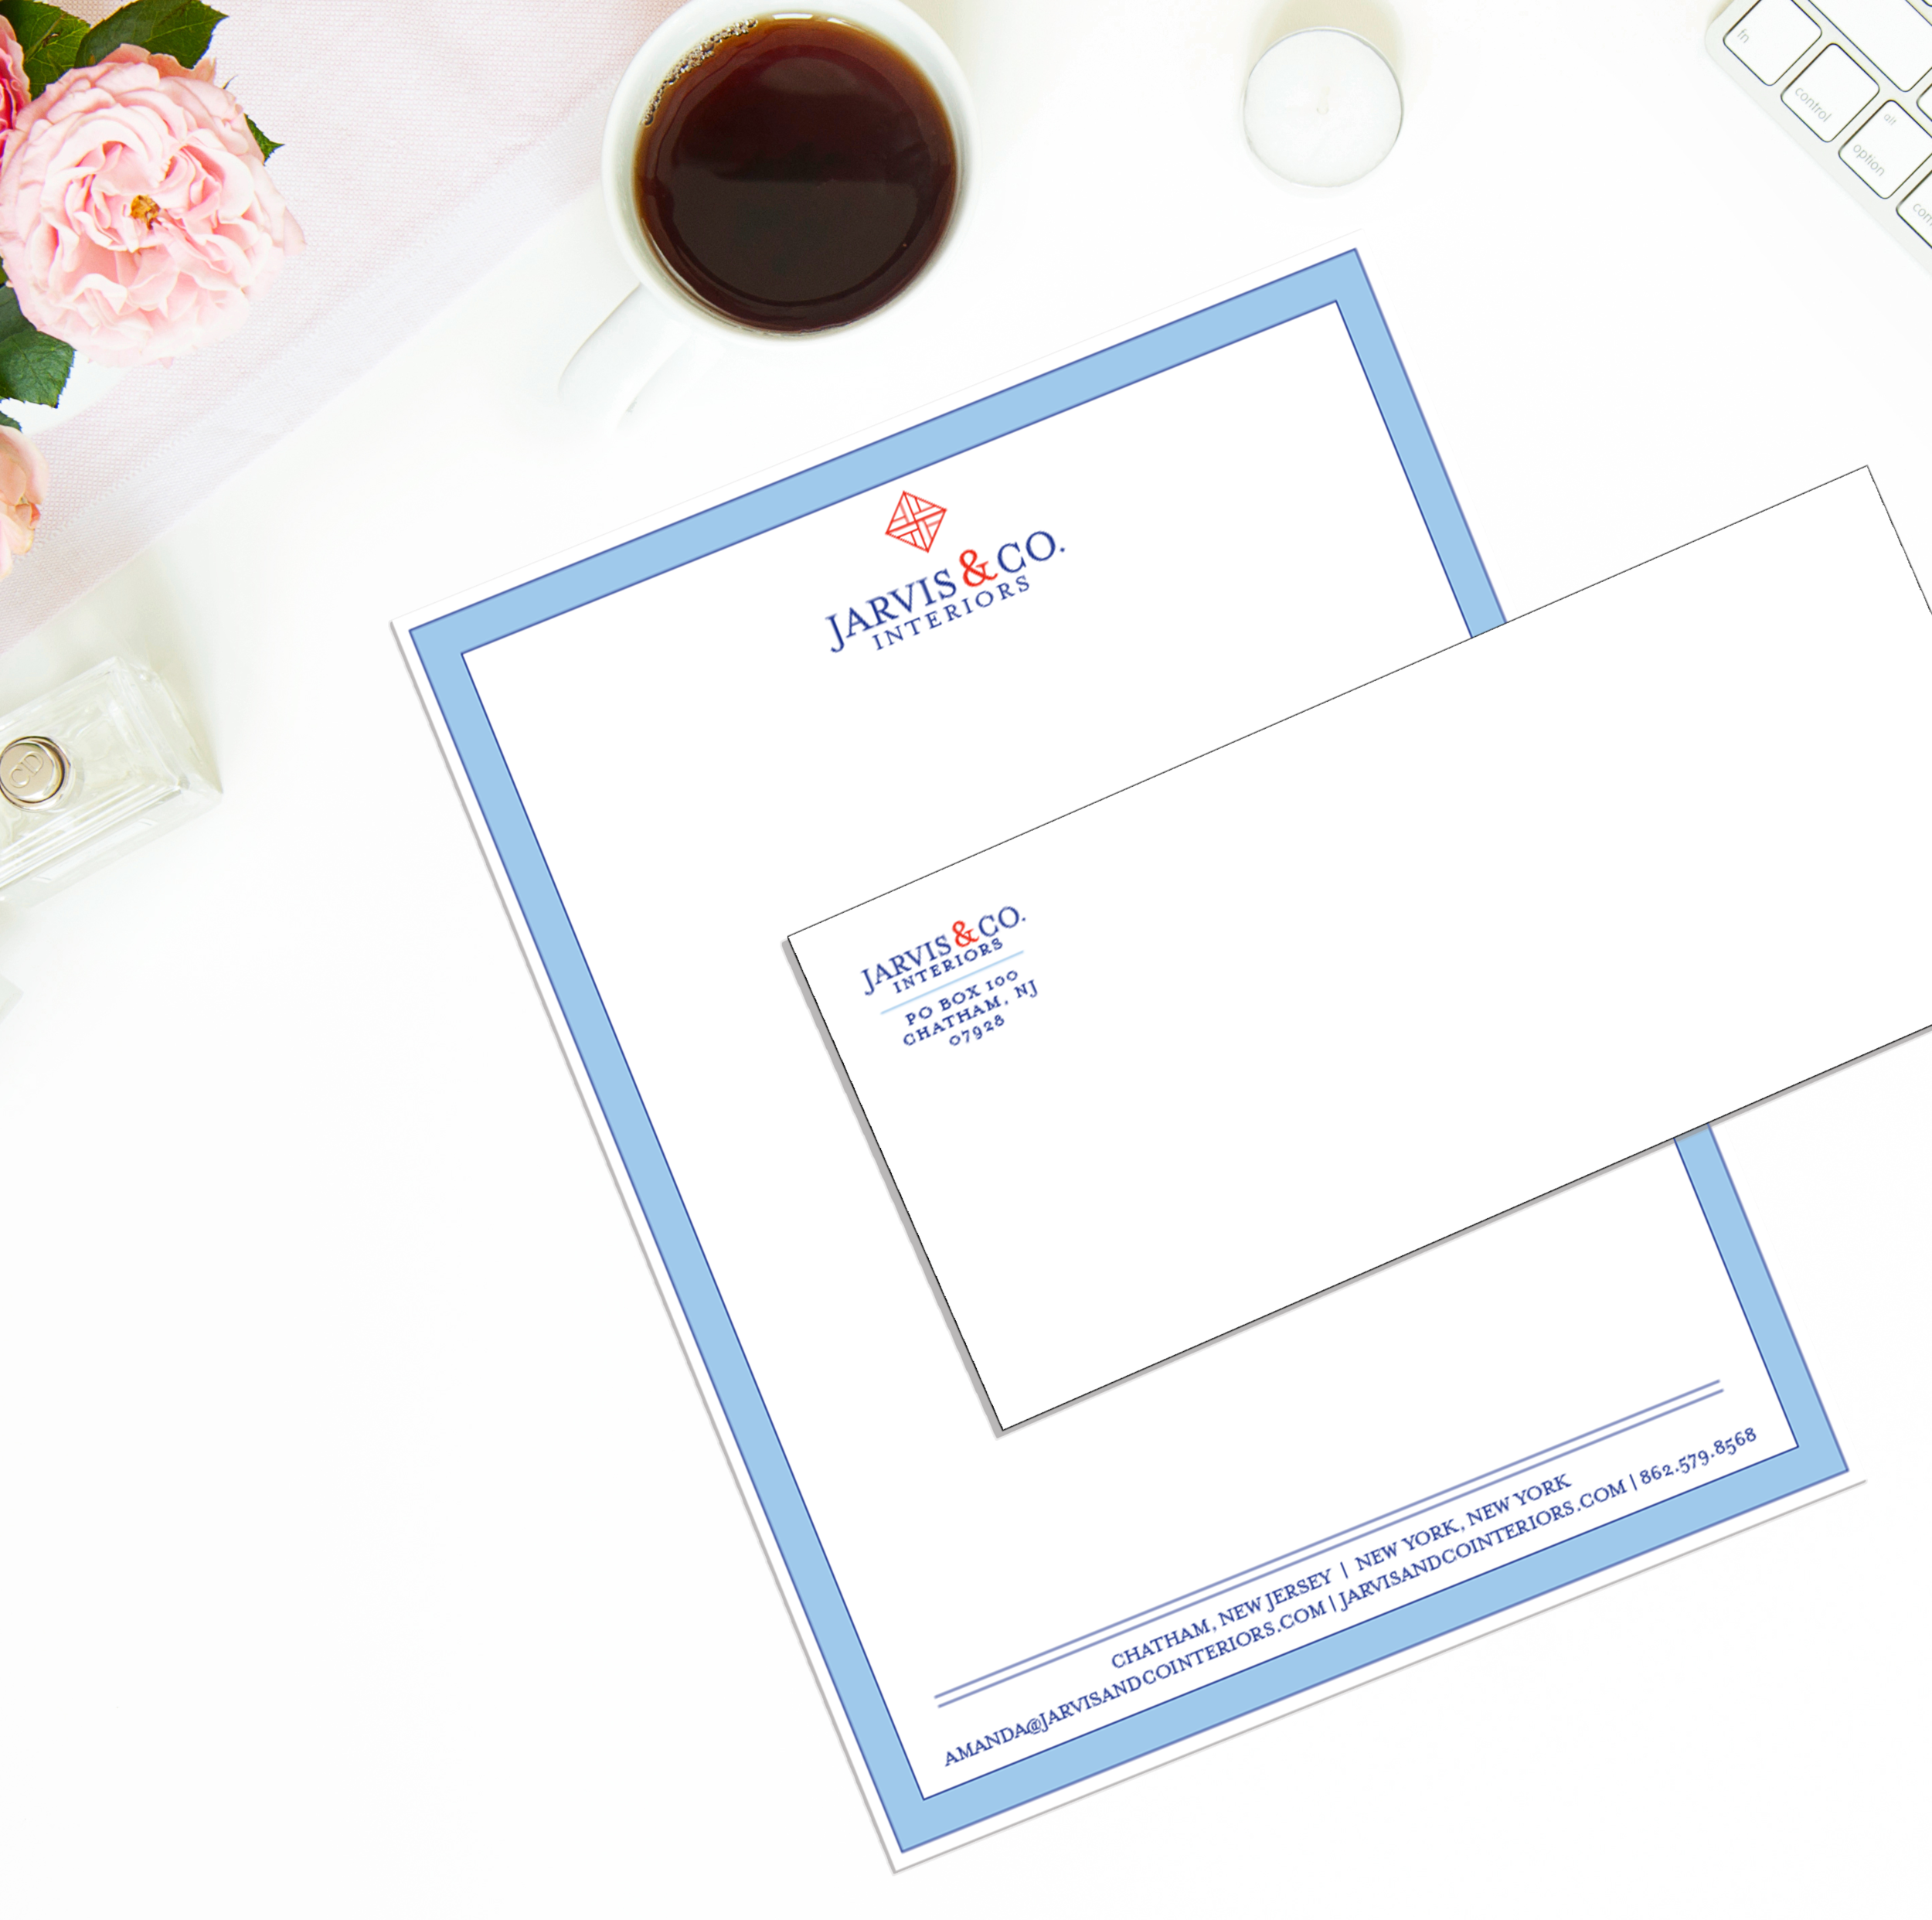 Jarvis & Co. letterhead and envelopes for sending out official letters and invoices! Get that paper, girl.